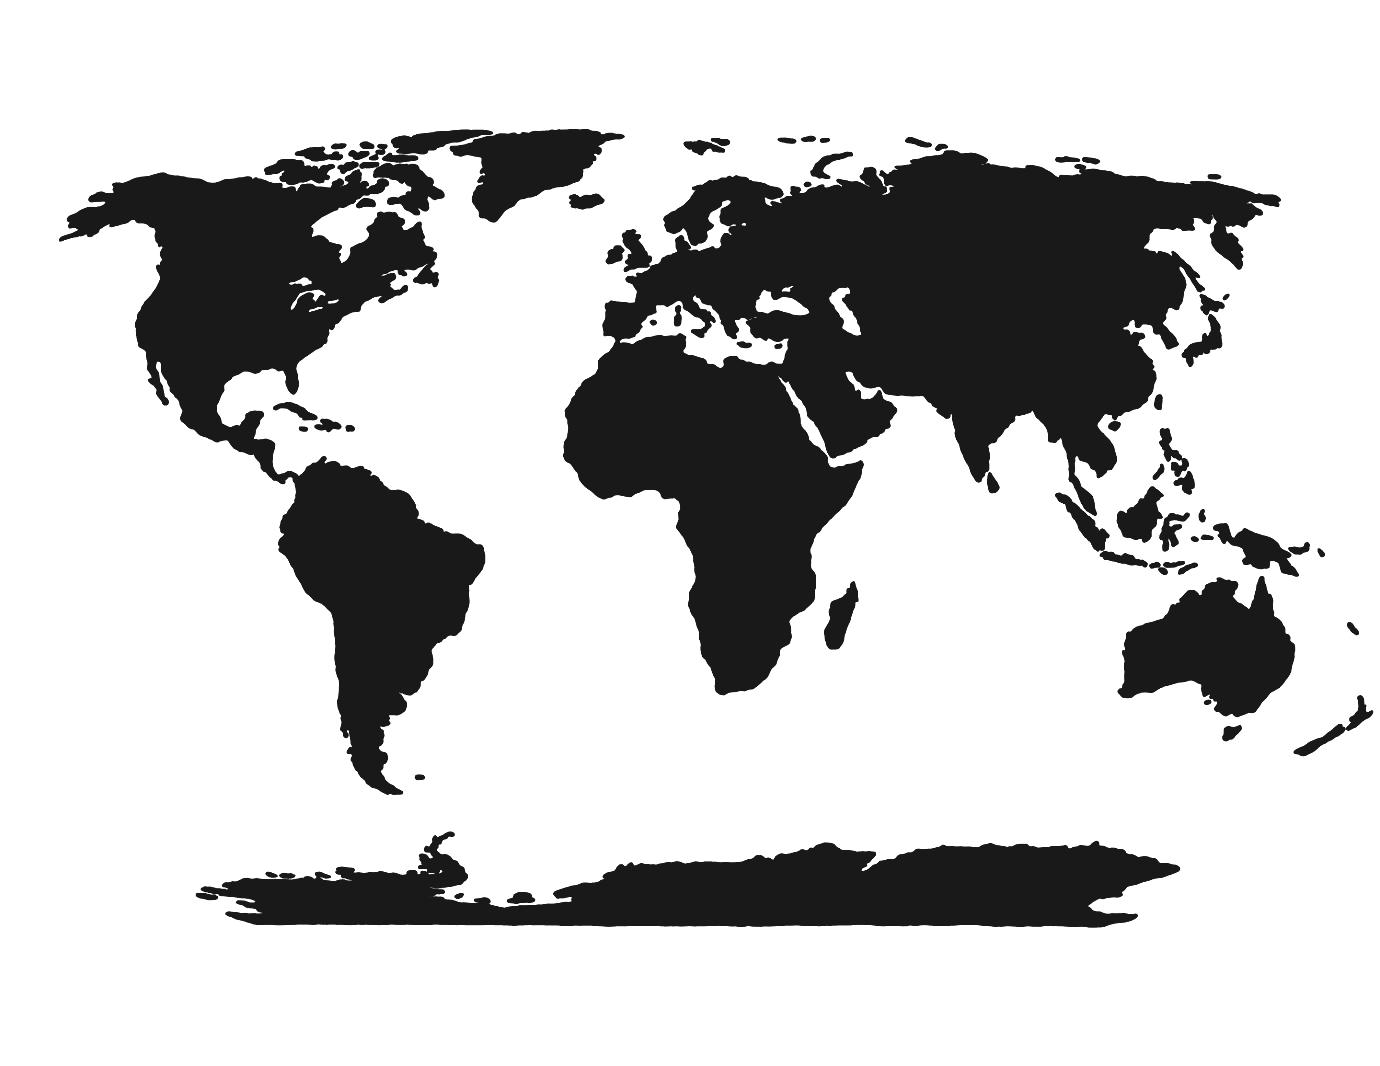 World Map Black And White Continents Printable Blank Template For.